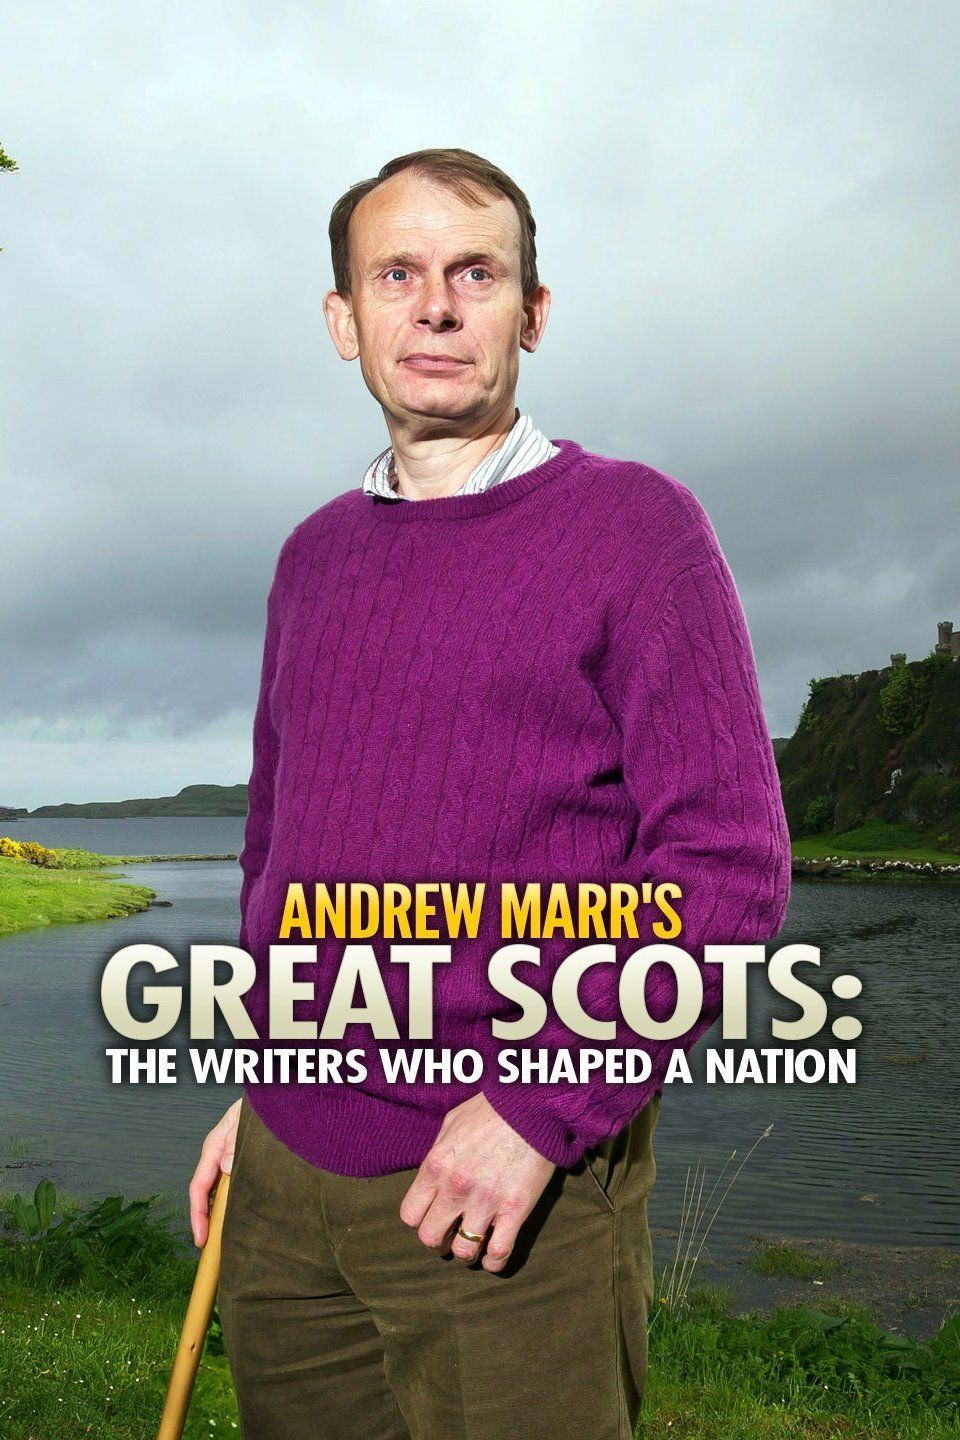 Andrew Marr's Great Scots: The Writers Who Shaped a Nation ne zaman